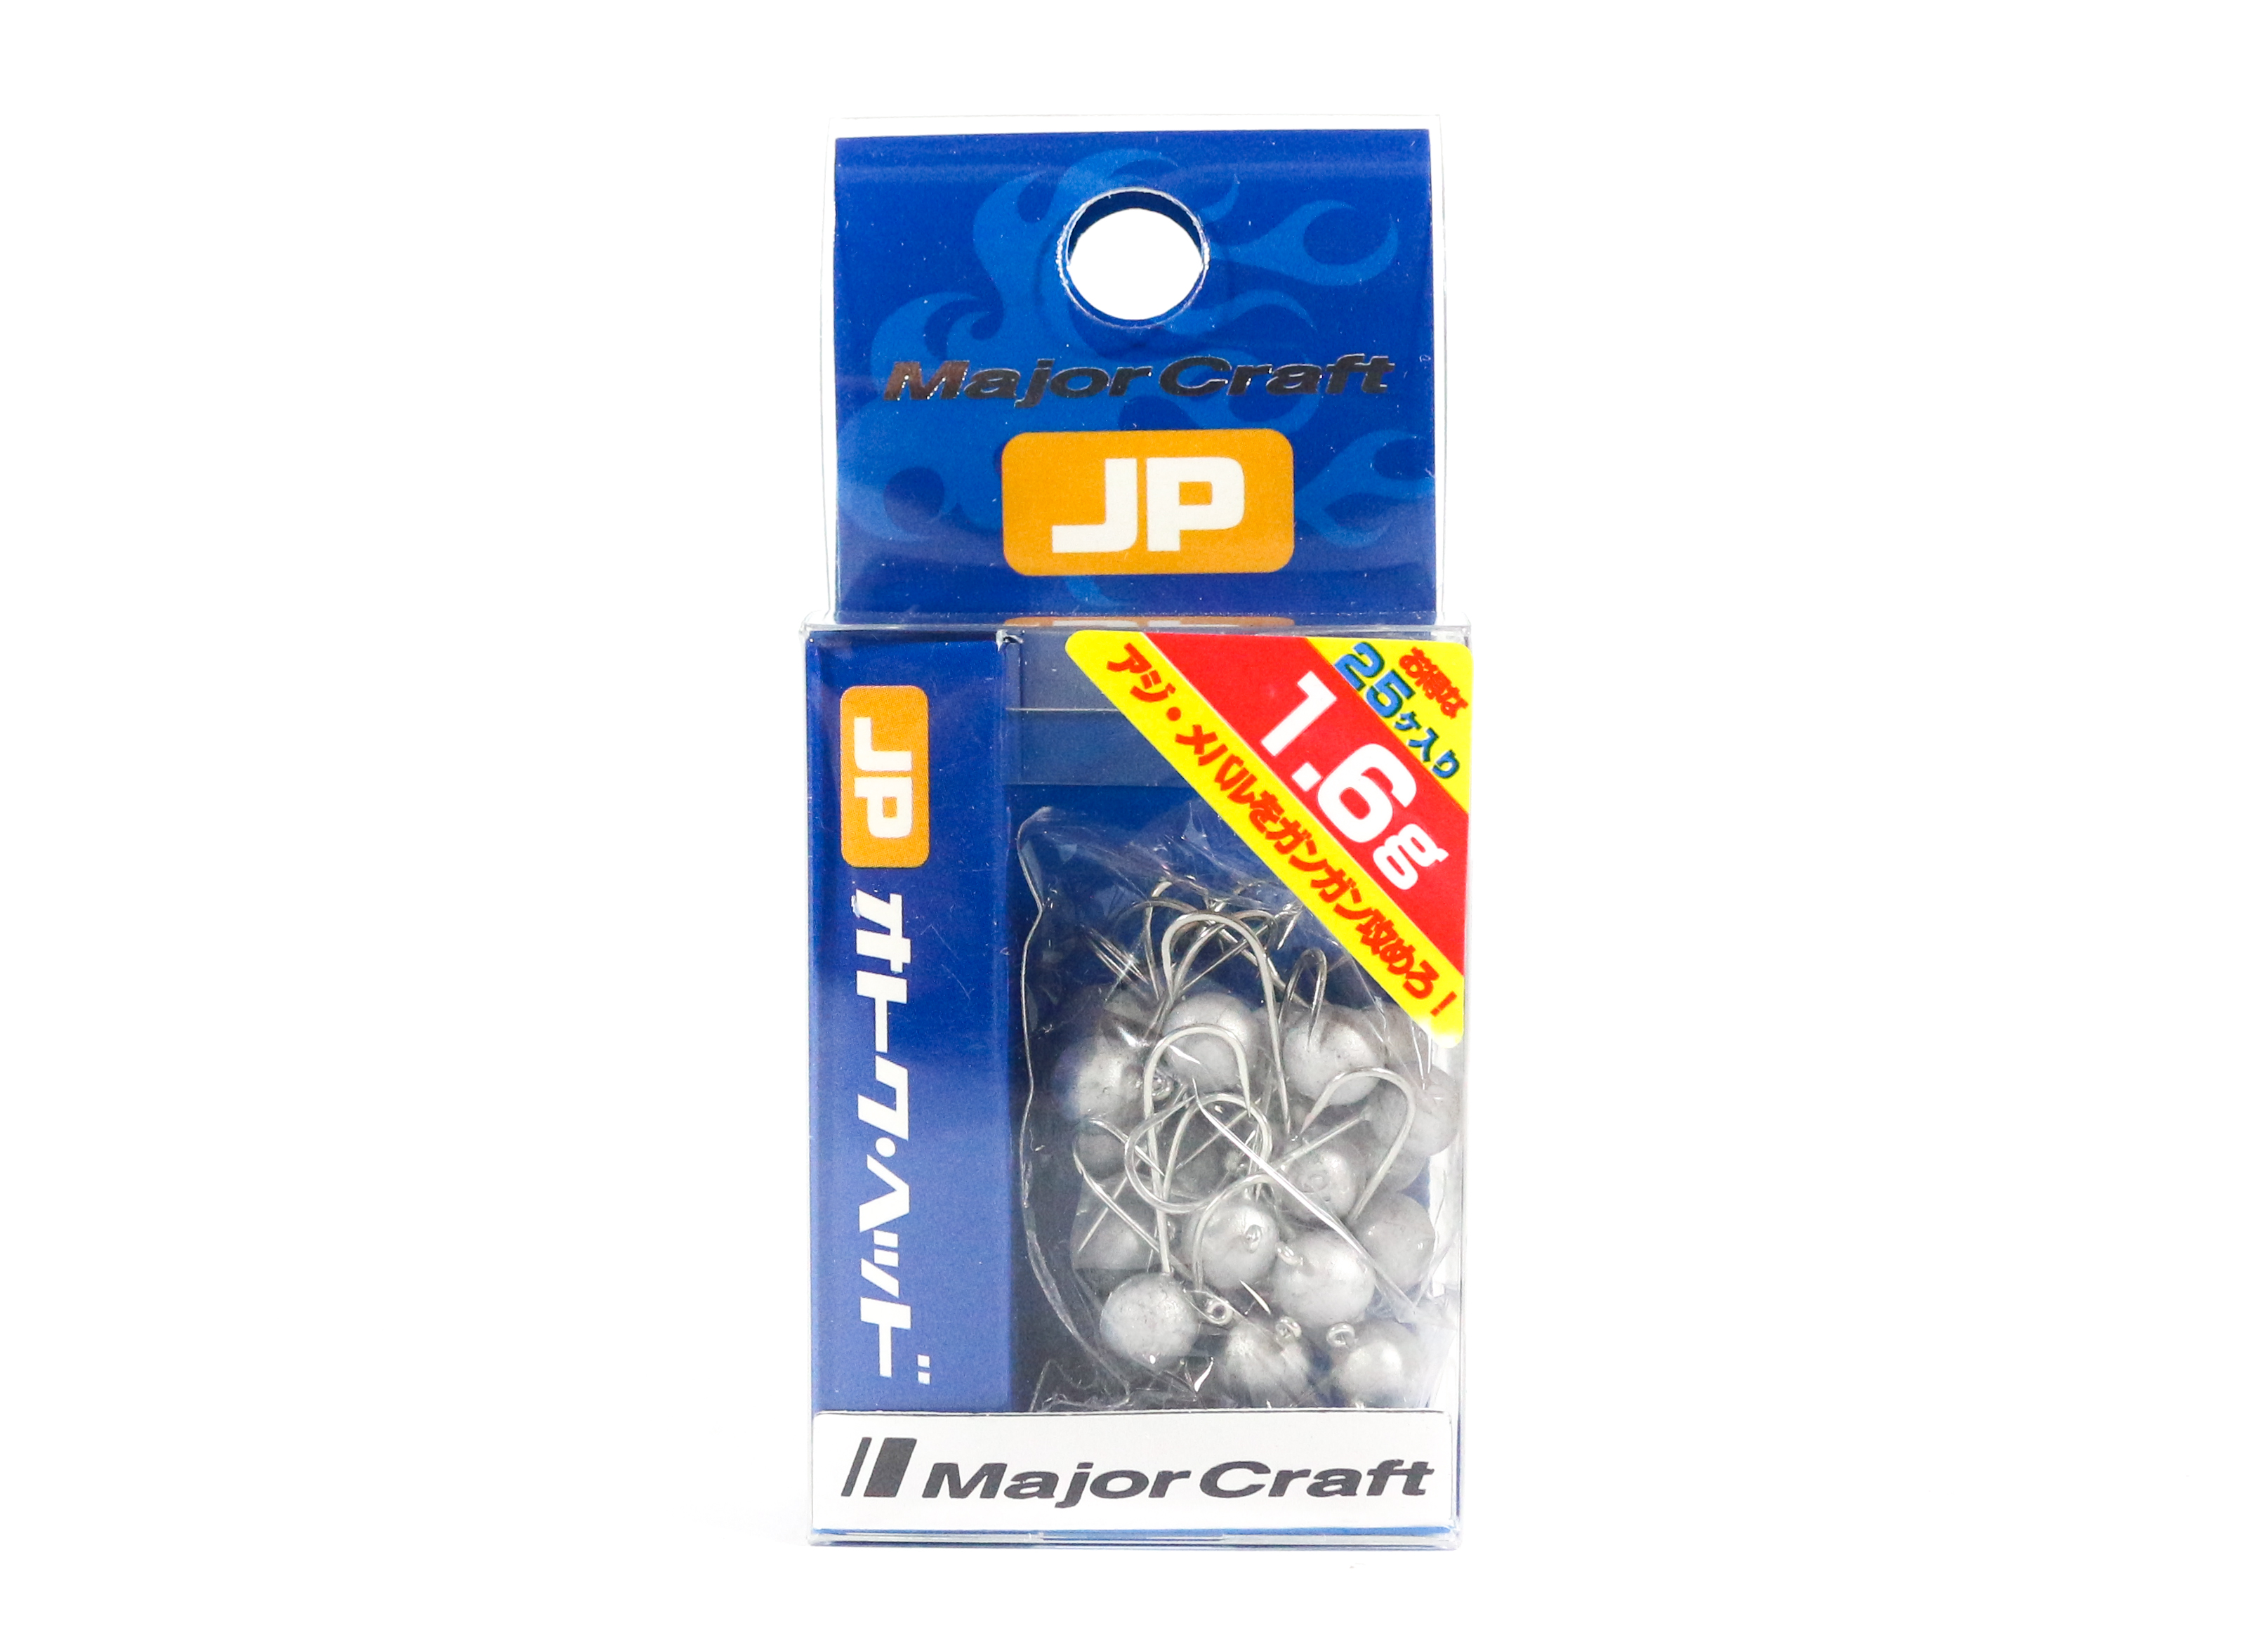 Major Craft Jig Head OTHD-1.6 grams Size 8 25 piece pack (6535)